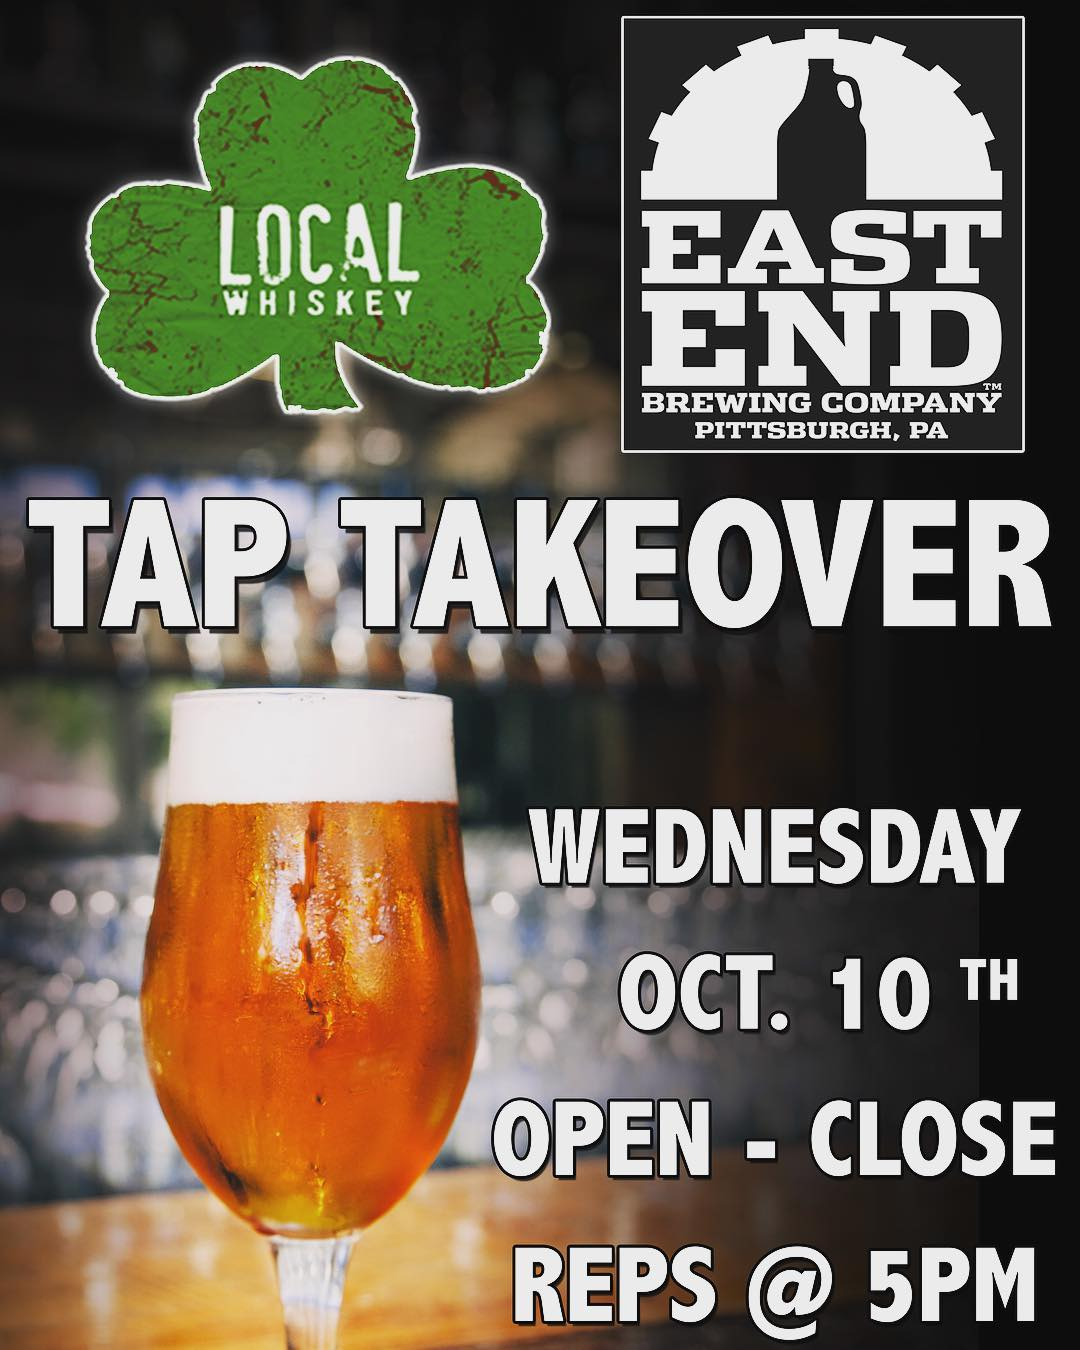 Join us this Wednesday, October 10th, at 5 pm as we host Pittsburgh's own @eastendbrewing for a Tap Takeover!! ••• We will be tapping: *Bourbon Barrel Aged Fatter Gary *2017 Gratitude Barleywine *Bourbon Barrel Aged Nunkin *Britsburgh Honey Heather *Guabb